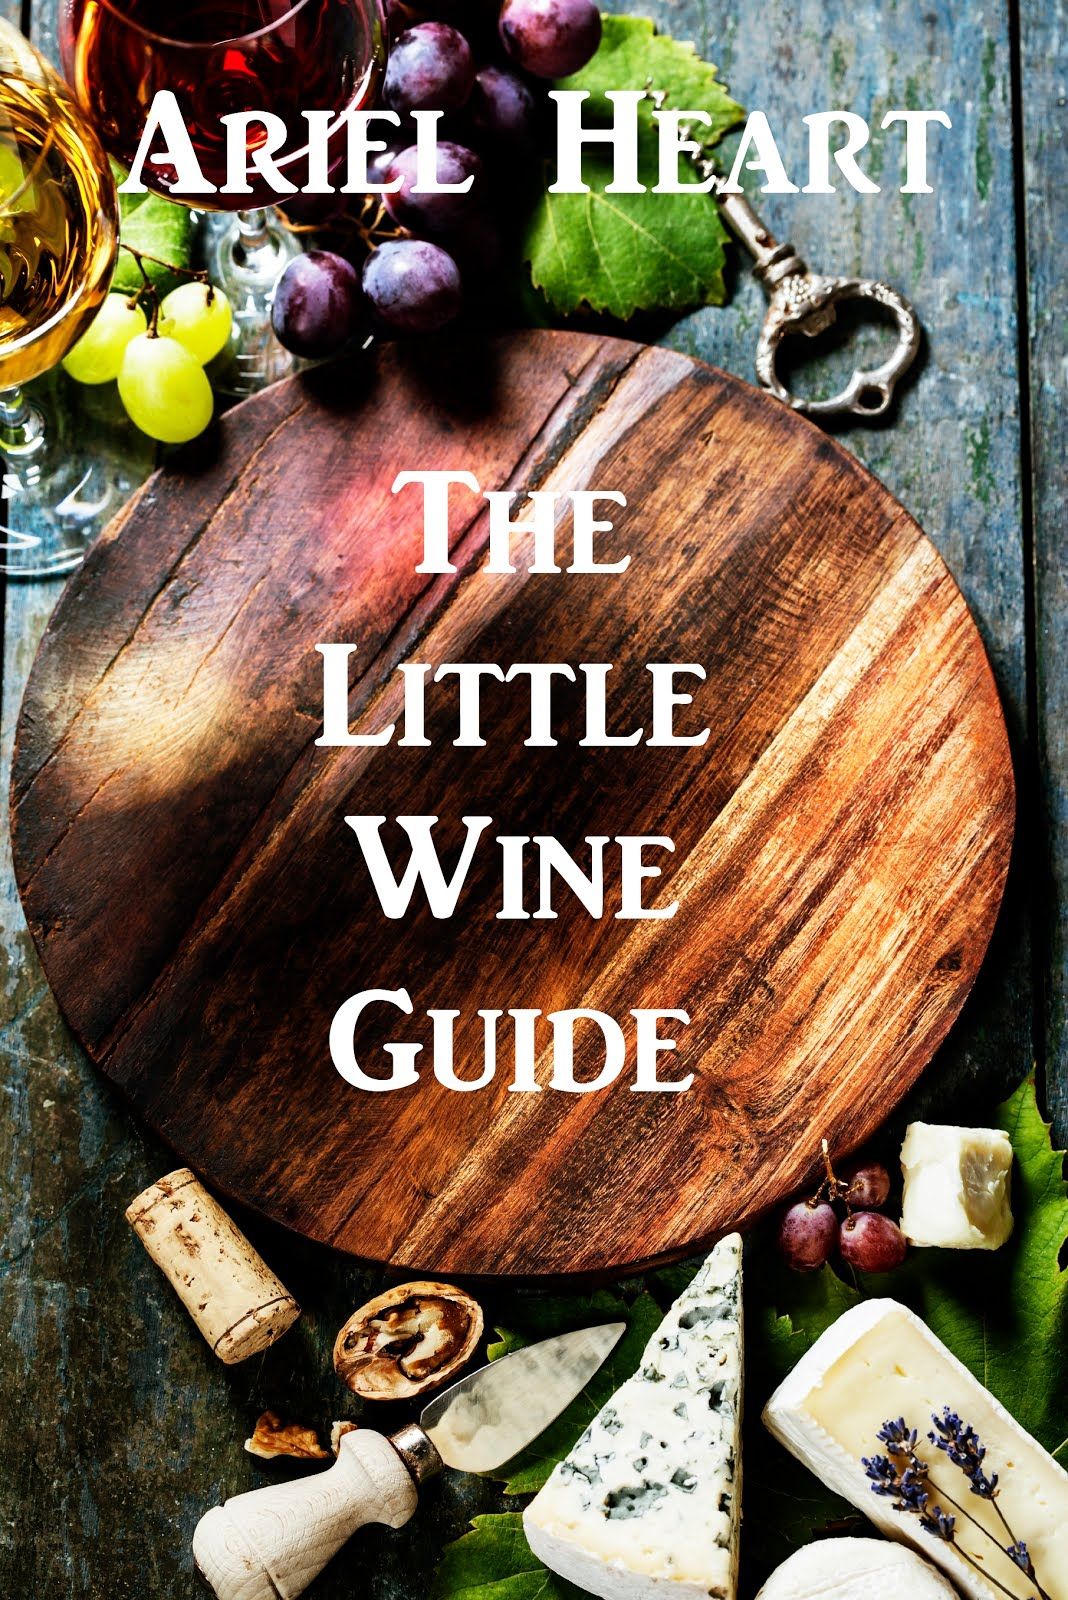 The Little Wine Guide